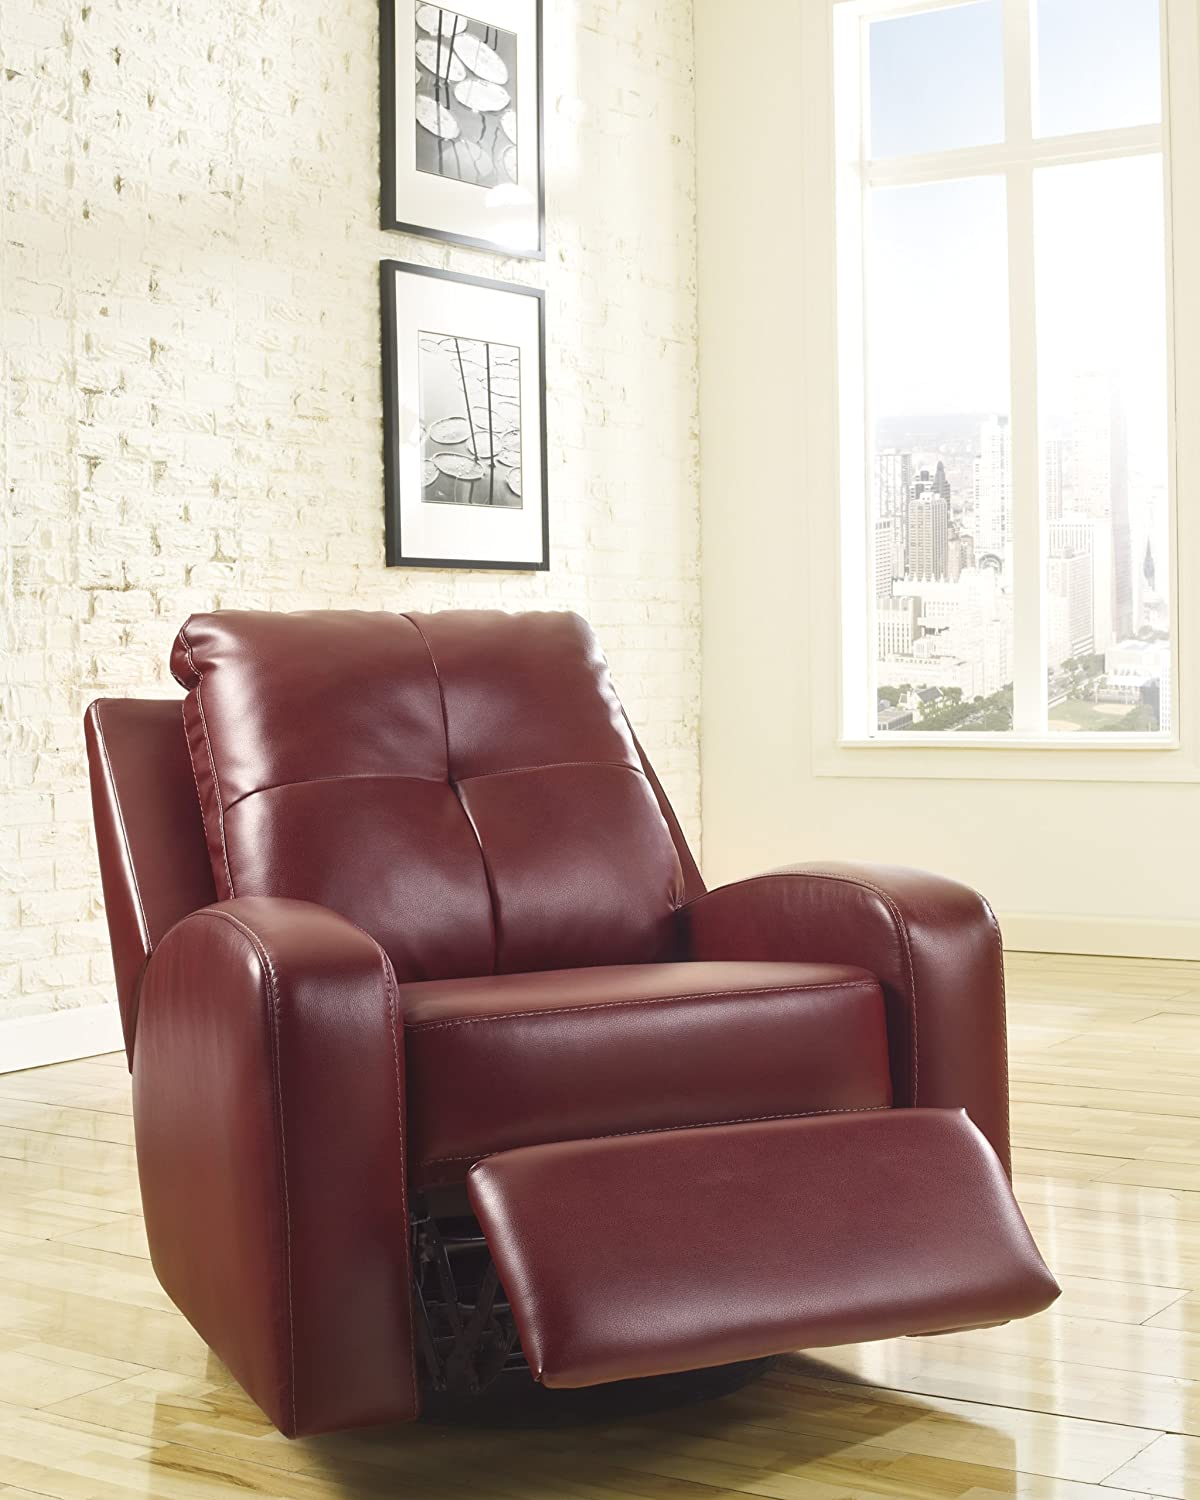 Amazon.com Ashley Furniture Signature Design - Mannix Swivel Recliner Chair - Manual Glider Reclining Motion - Red Kitchen u0026 Dining & Amazon.com: Ashley Furniture Signature Design - Mannix Swivel ... islam-shia.org